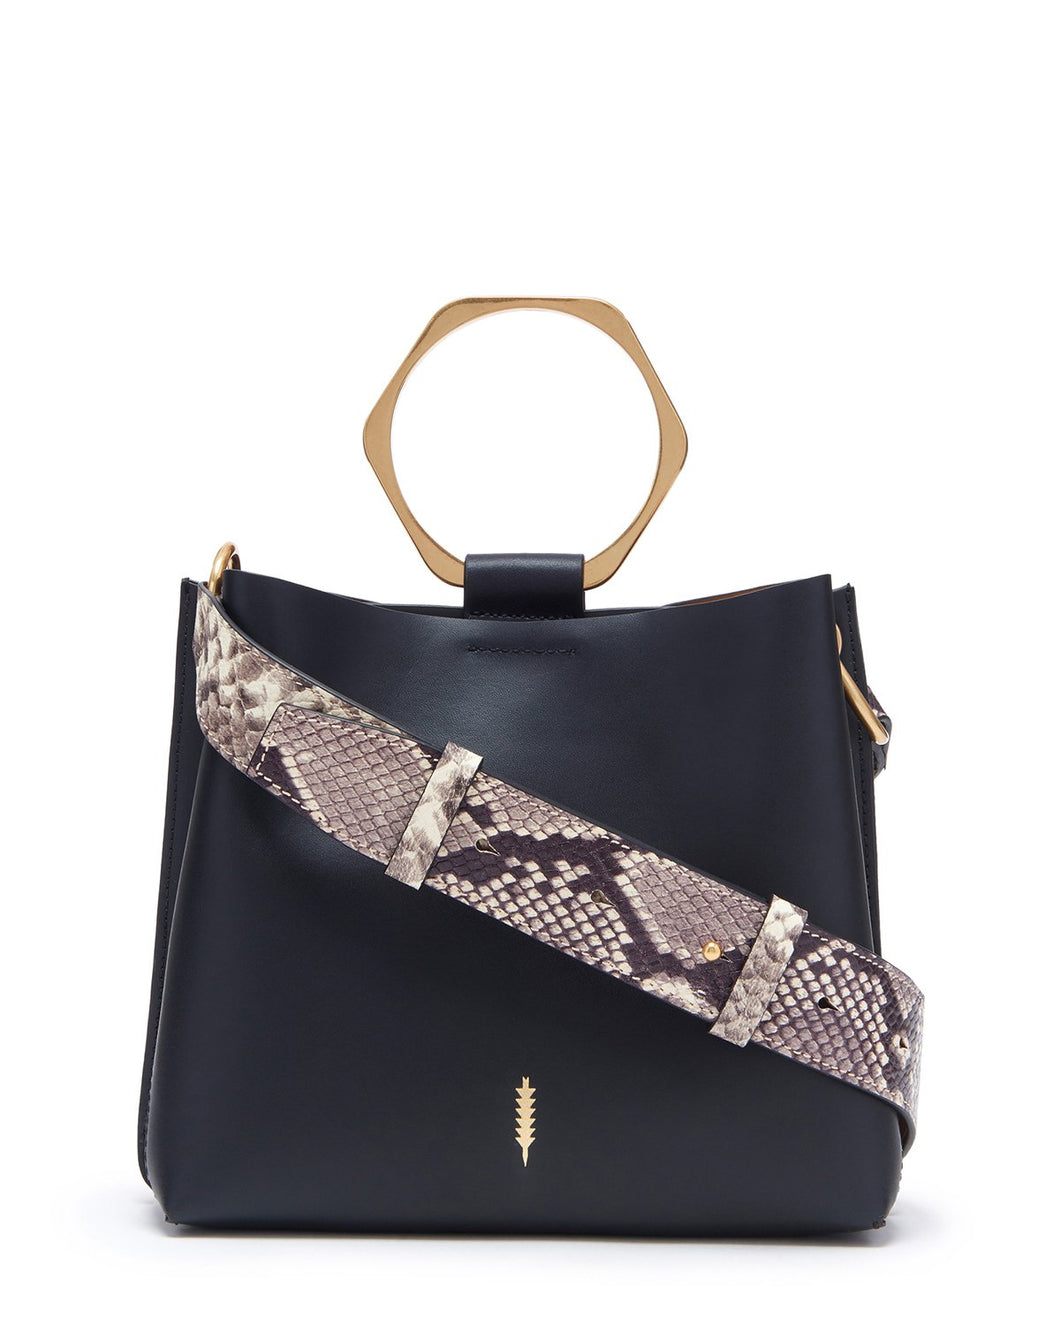 Bardot Small Bucket Bag in Black